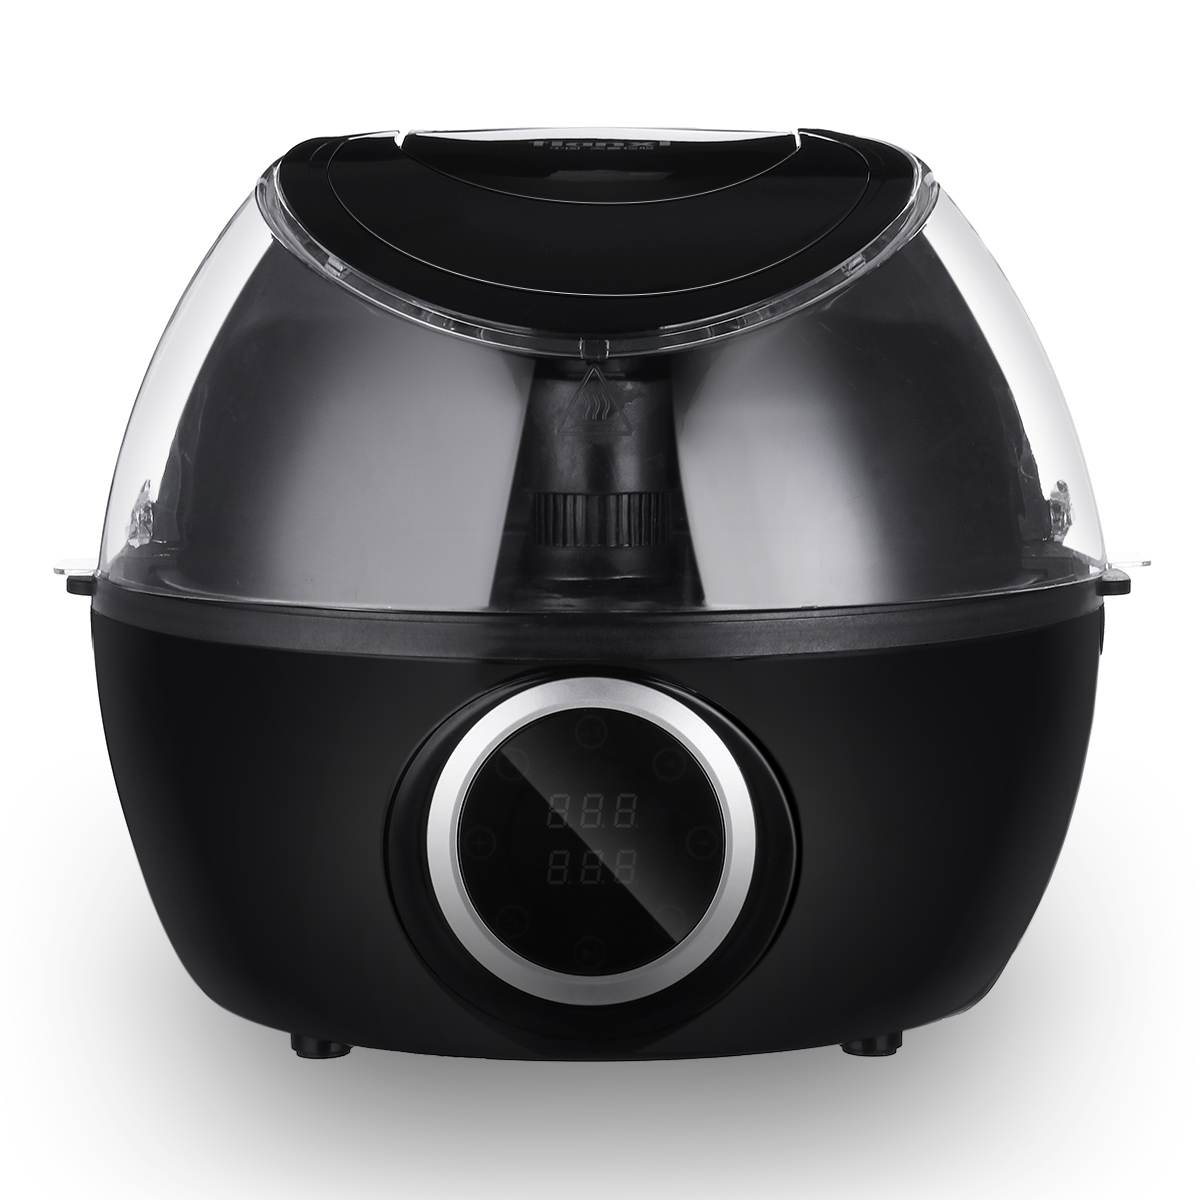 LCD 3.5L Electric Fry Food Cooker Home Automatic Steamer Machine No Oil Kitchen Cooking Appliances Multi Cooker 1230W 220VLCD 3.5L Electric Fry Food Cooker Home Automatic Steamer Machine No Oil Kitchen Cooking Appliances Multi Cooker 1230W 220V